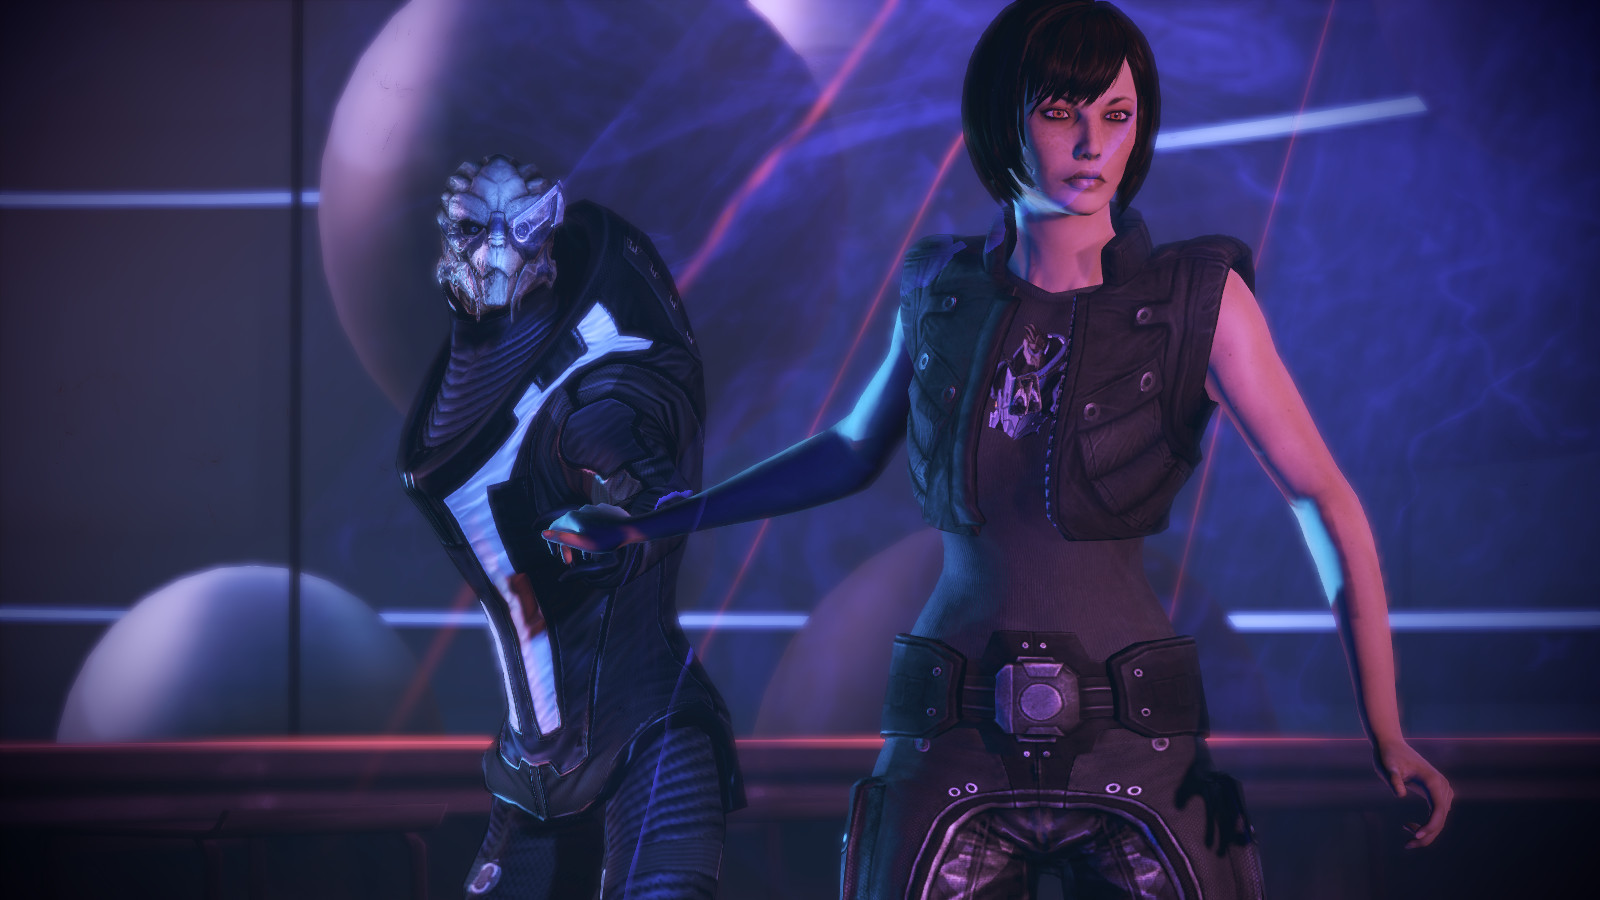 Mass effect nude texmod pron galleries